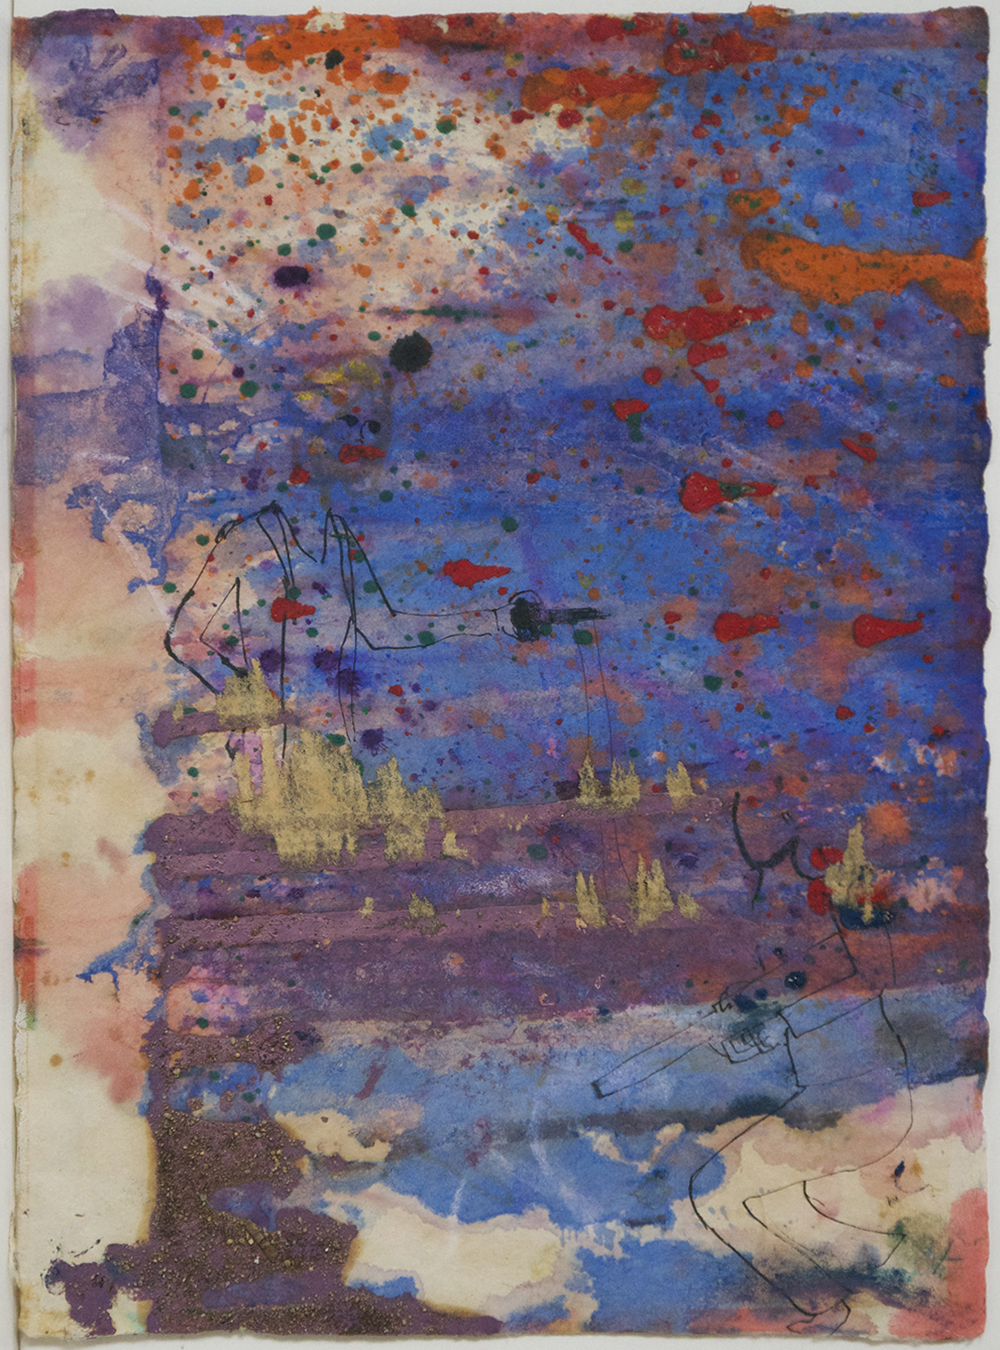 Untitled,   Watercolor on handmade paper, c. 1960, 16 x 12 inches